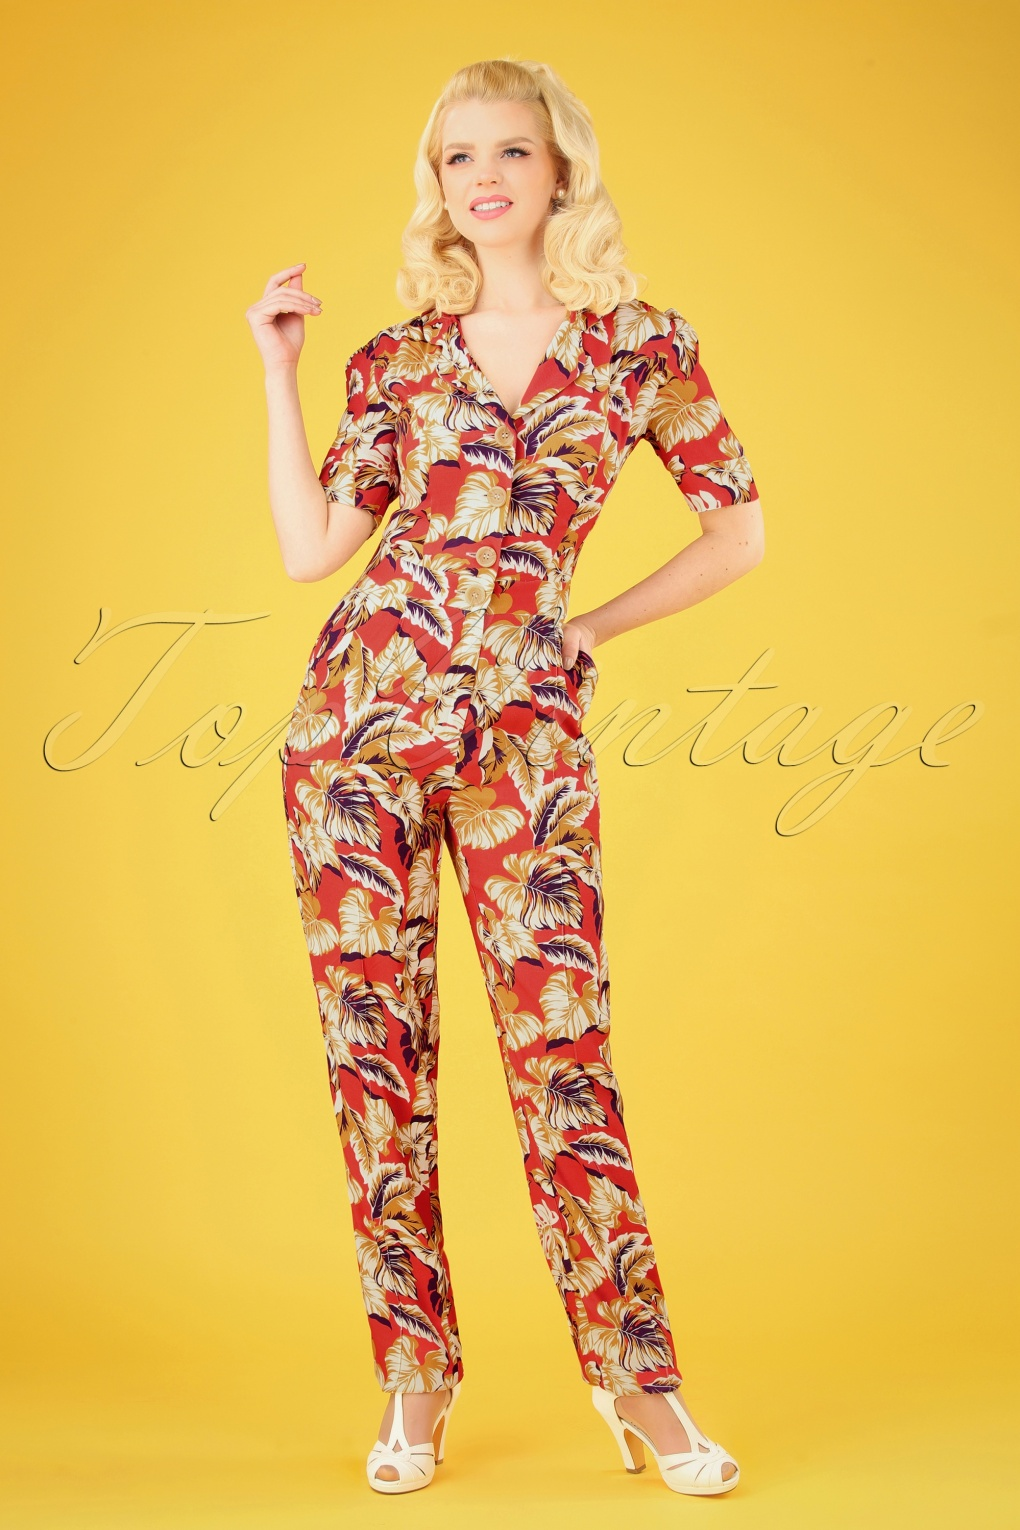 Agent Peggy Carter Costume, Dress, Hats 40s Classic Hibiscus Flowers Jumpsuit in Montana Dust £105.12 AT vintagedancer.com